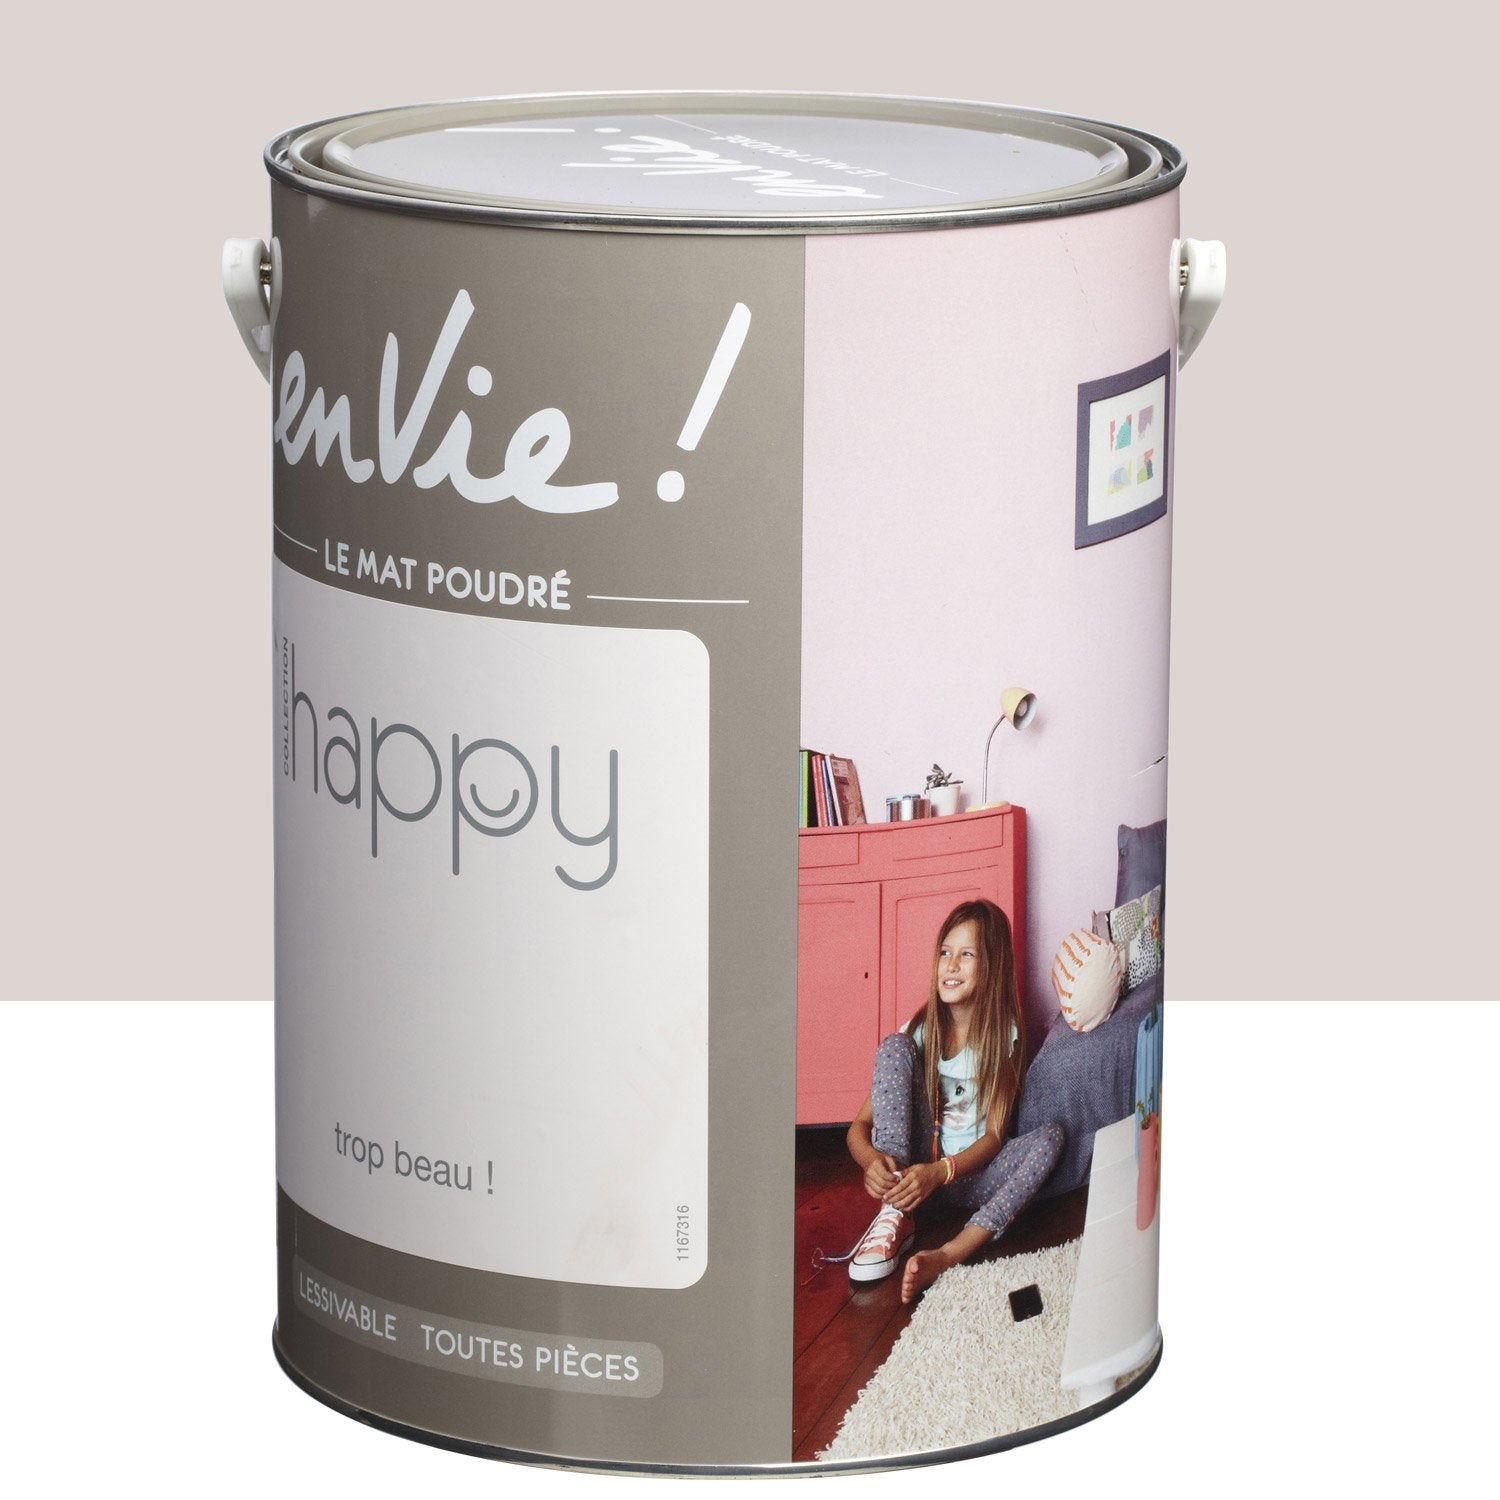 Peinture gris trop beau luxens envie collection happy 5 for Peinture bio leroy merlin